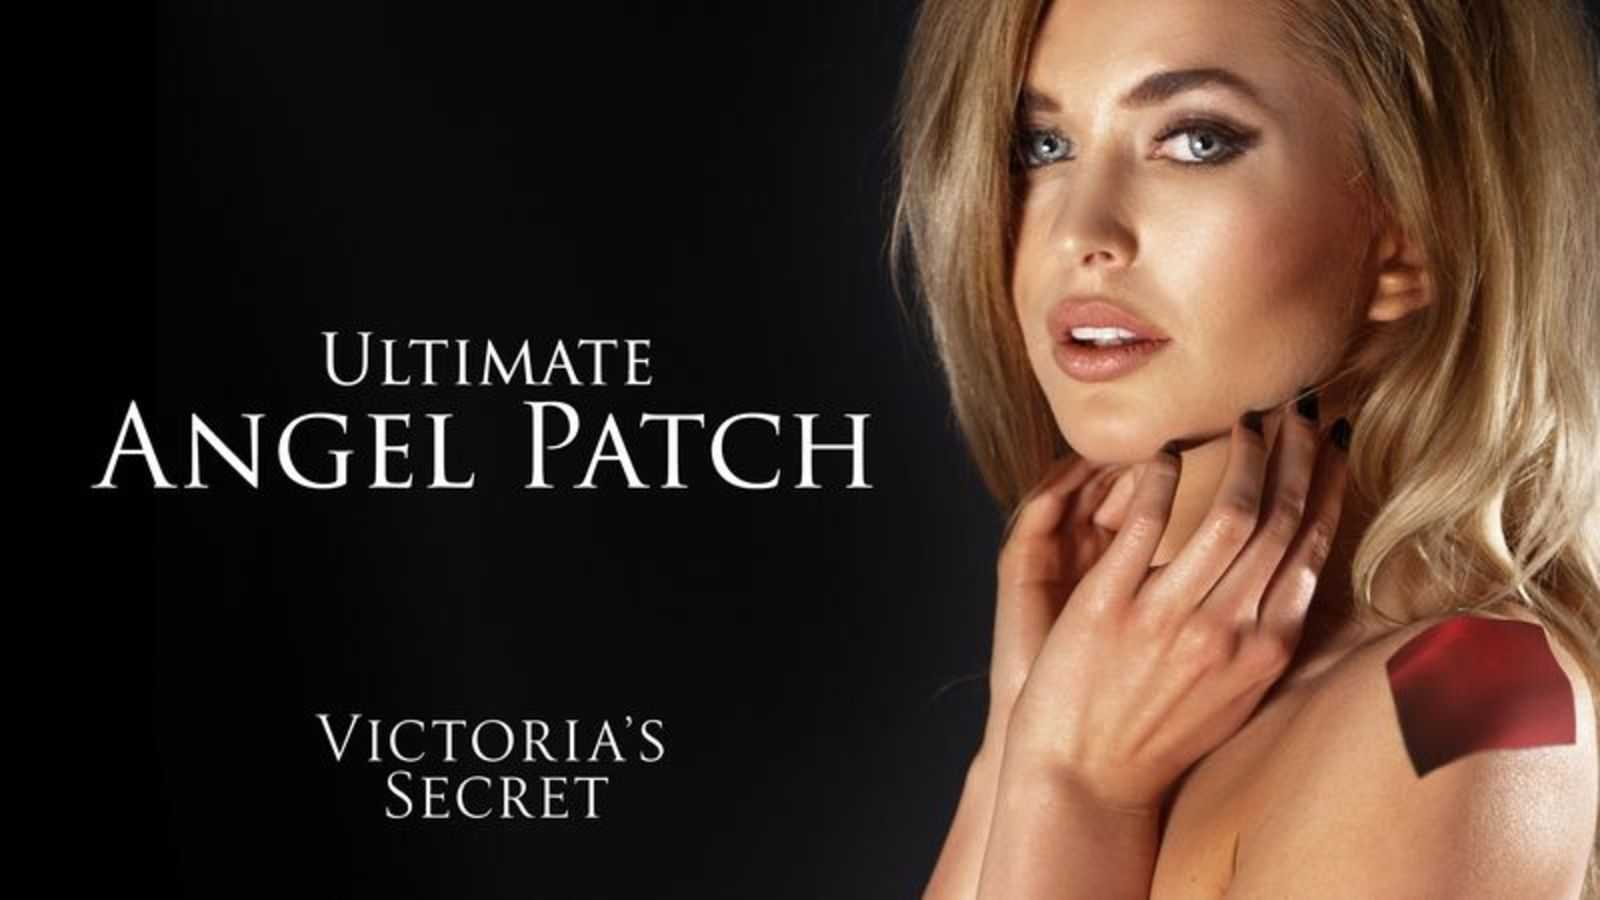 Victoria's Secret Introduces 3-Inch Patch Of Satin To Place Anywhere On Body